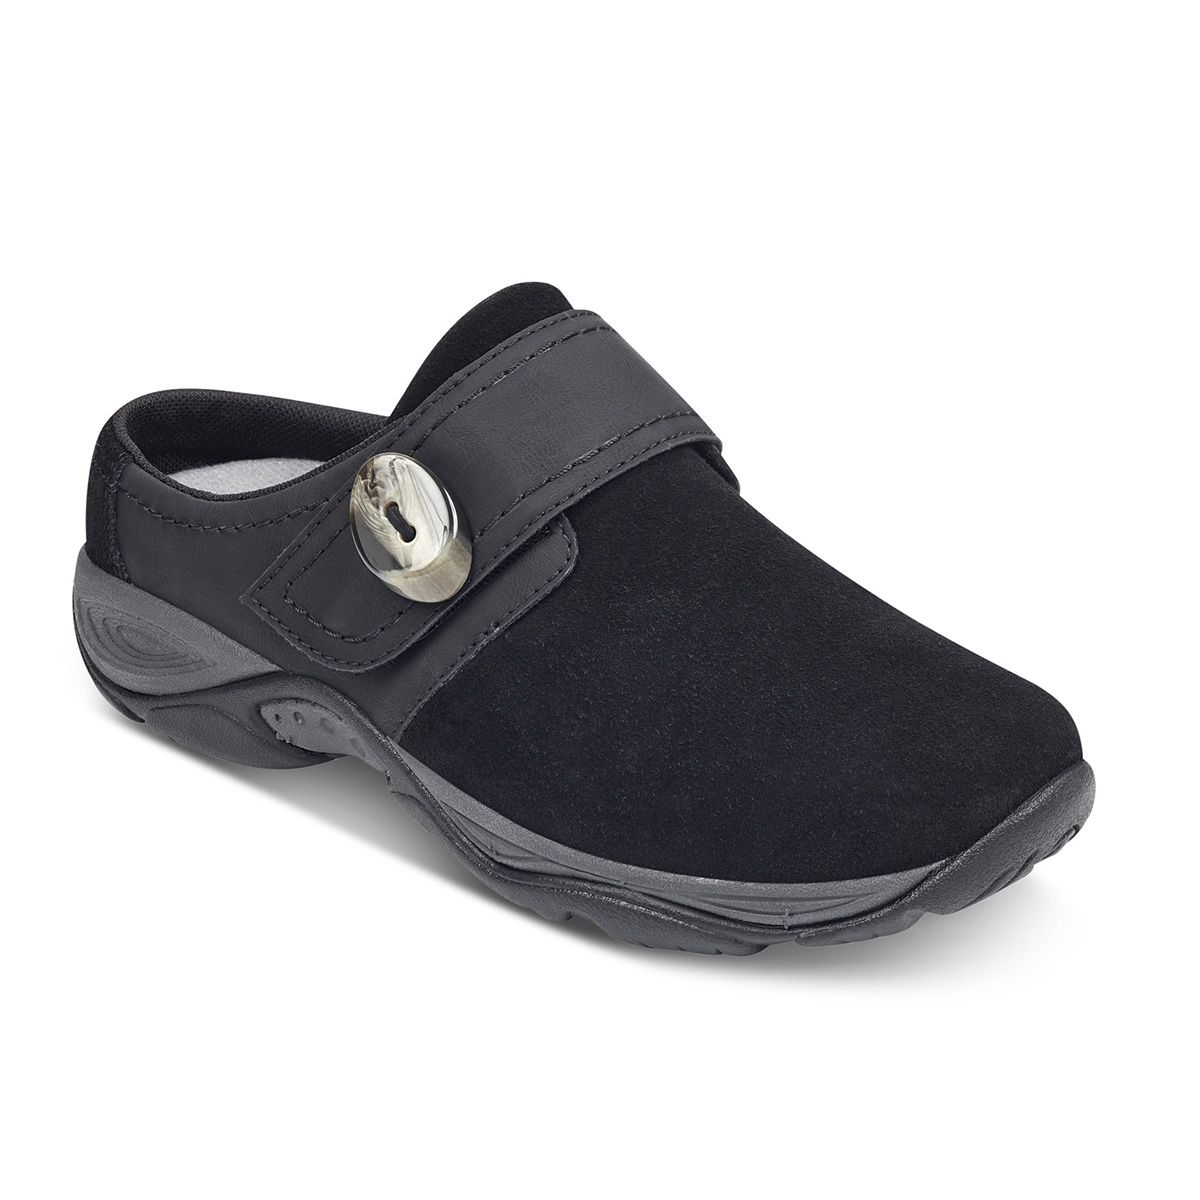 af4a5530fe9 Easy Spirit Shoes - Macy s